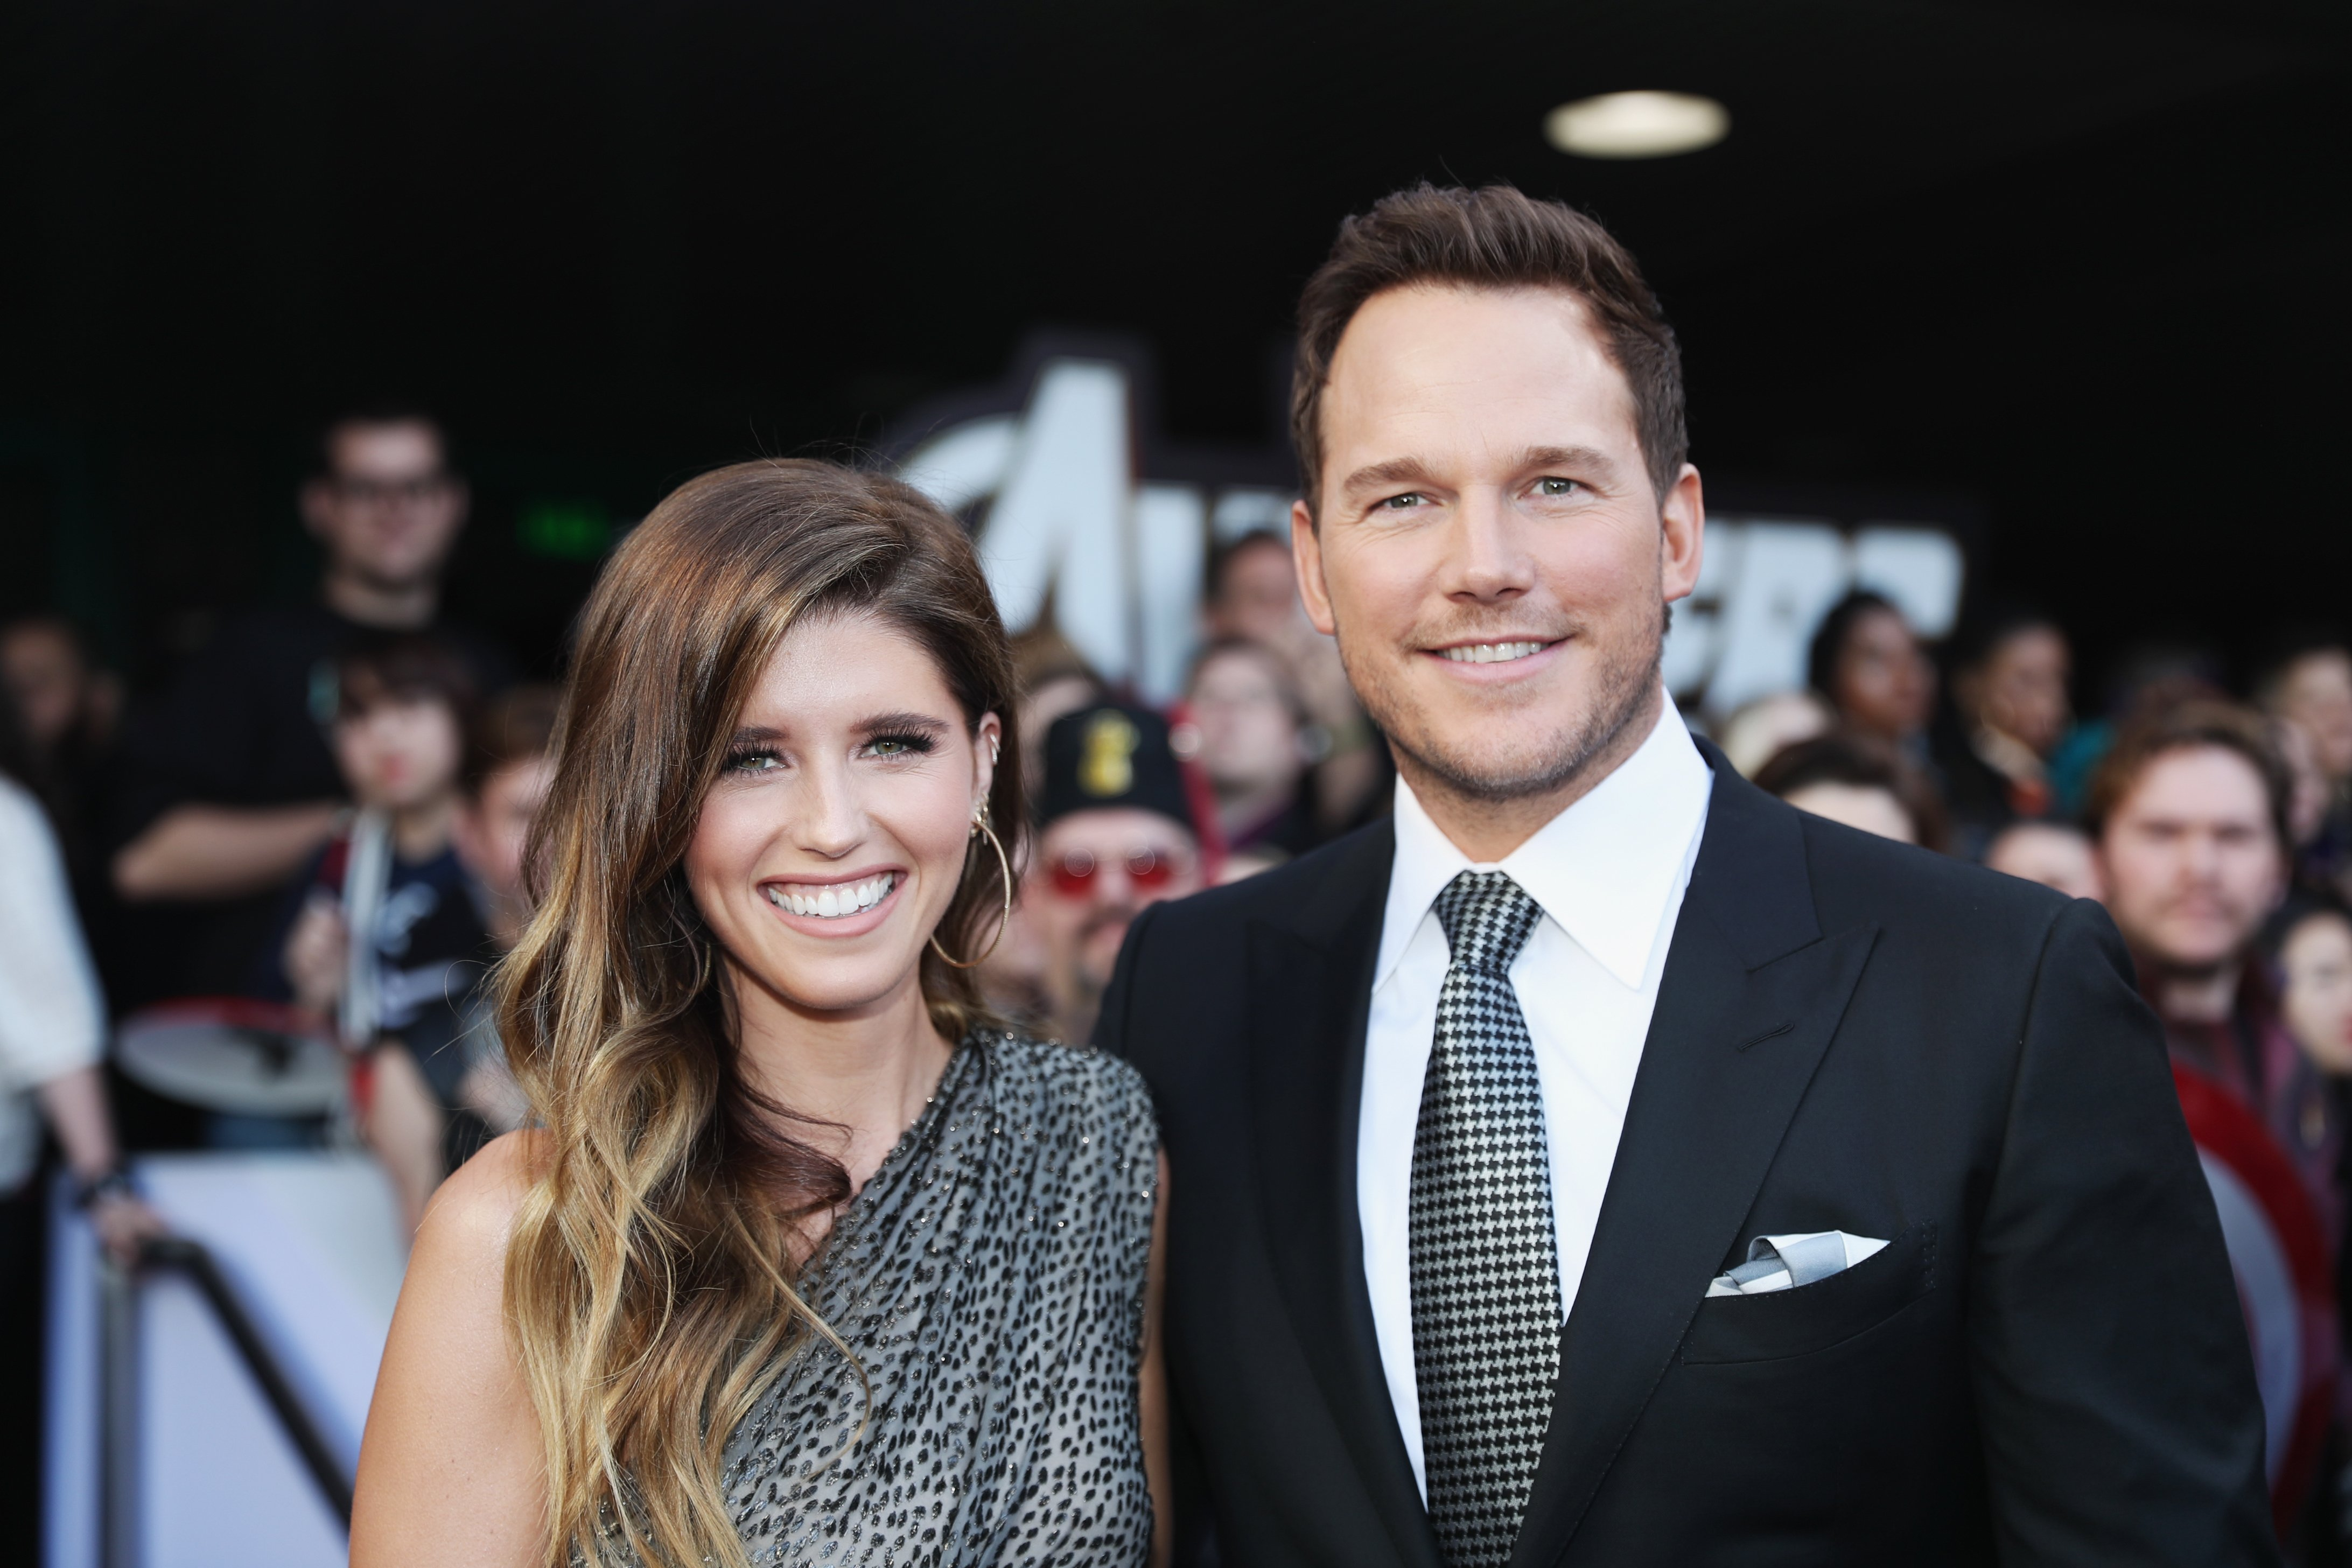 """Katherine Schwarzenegger and Chris Pratt attend the premiere of """"Avengers: Endgame"""" in Los Angeles on April 23, 2019 